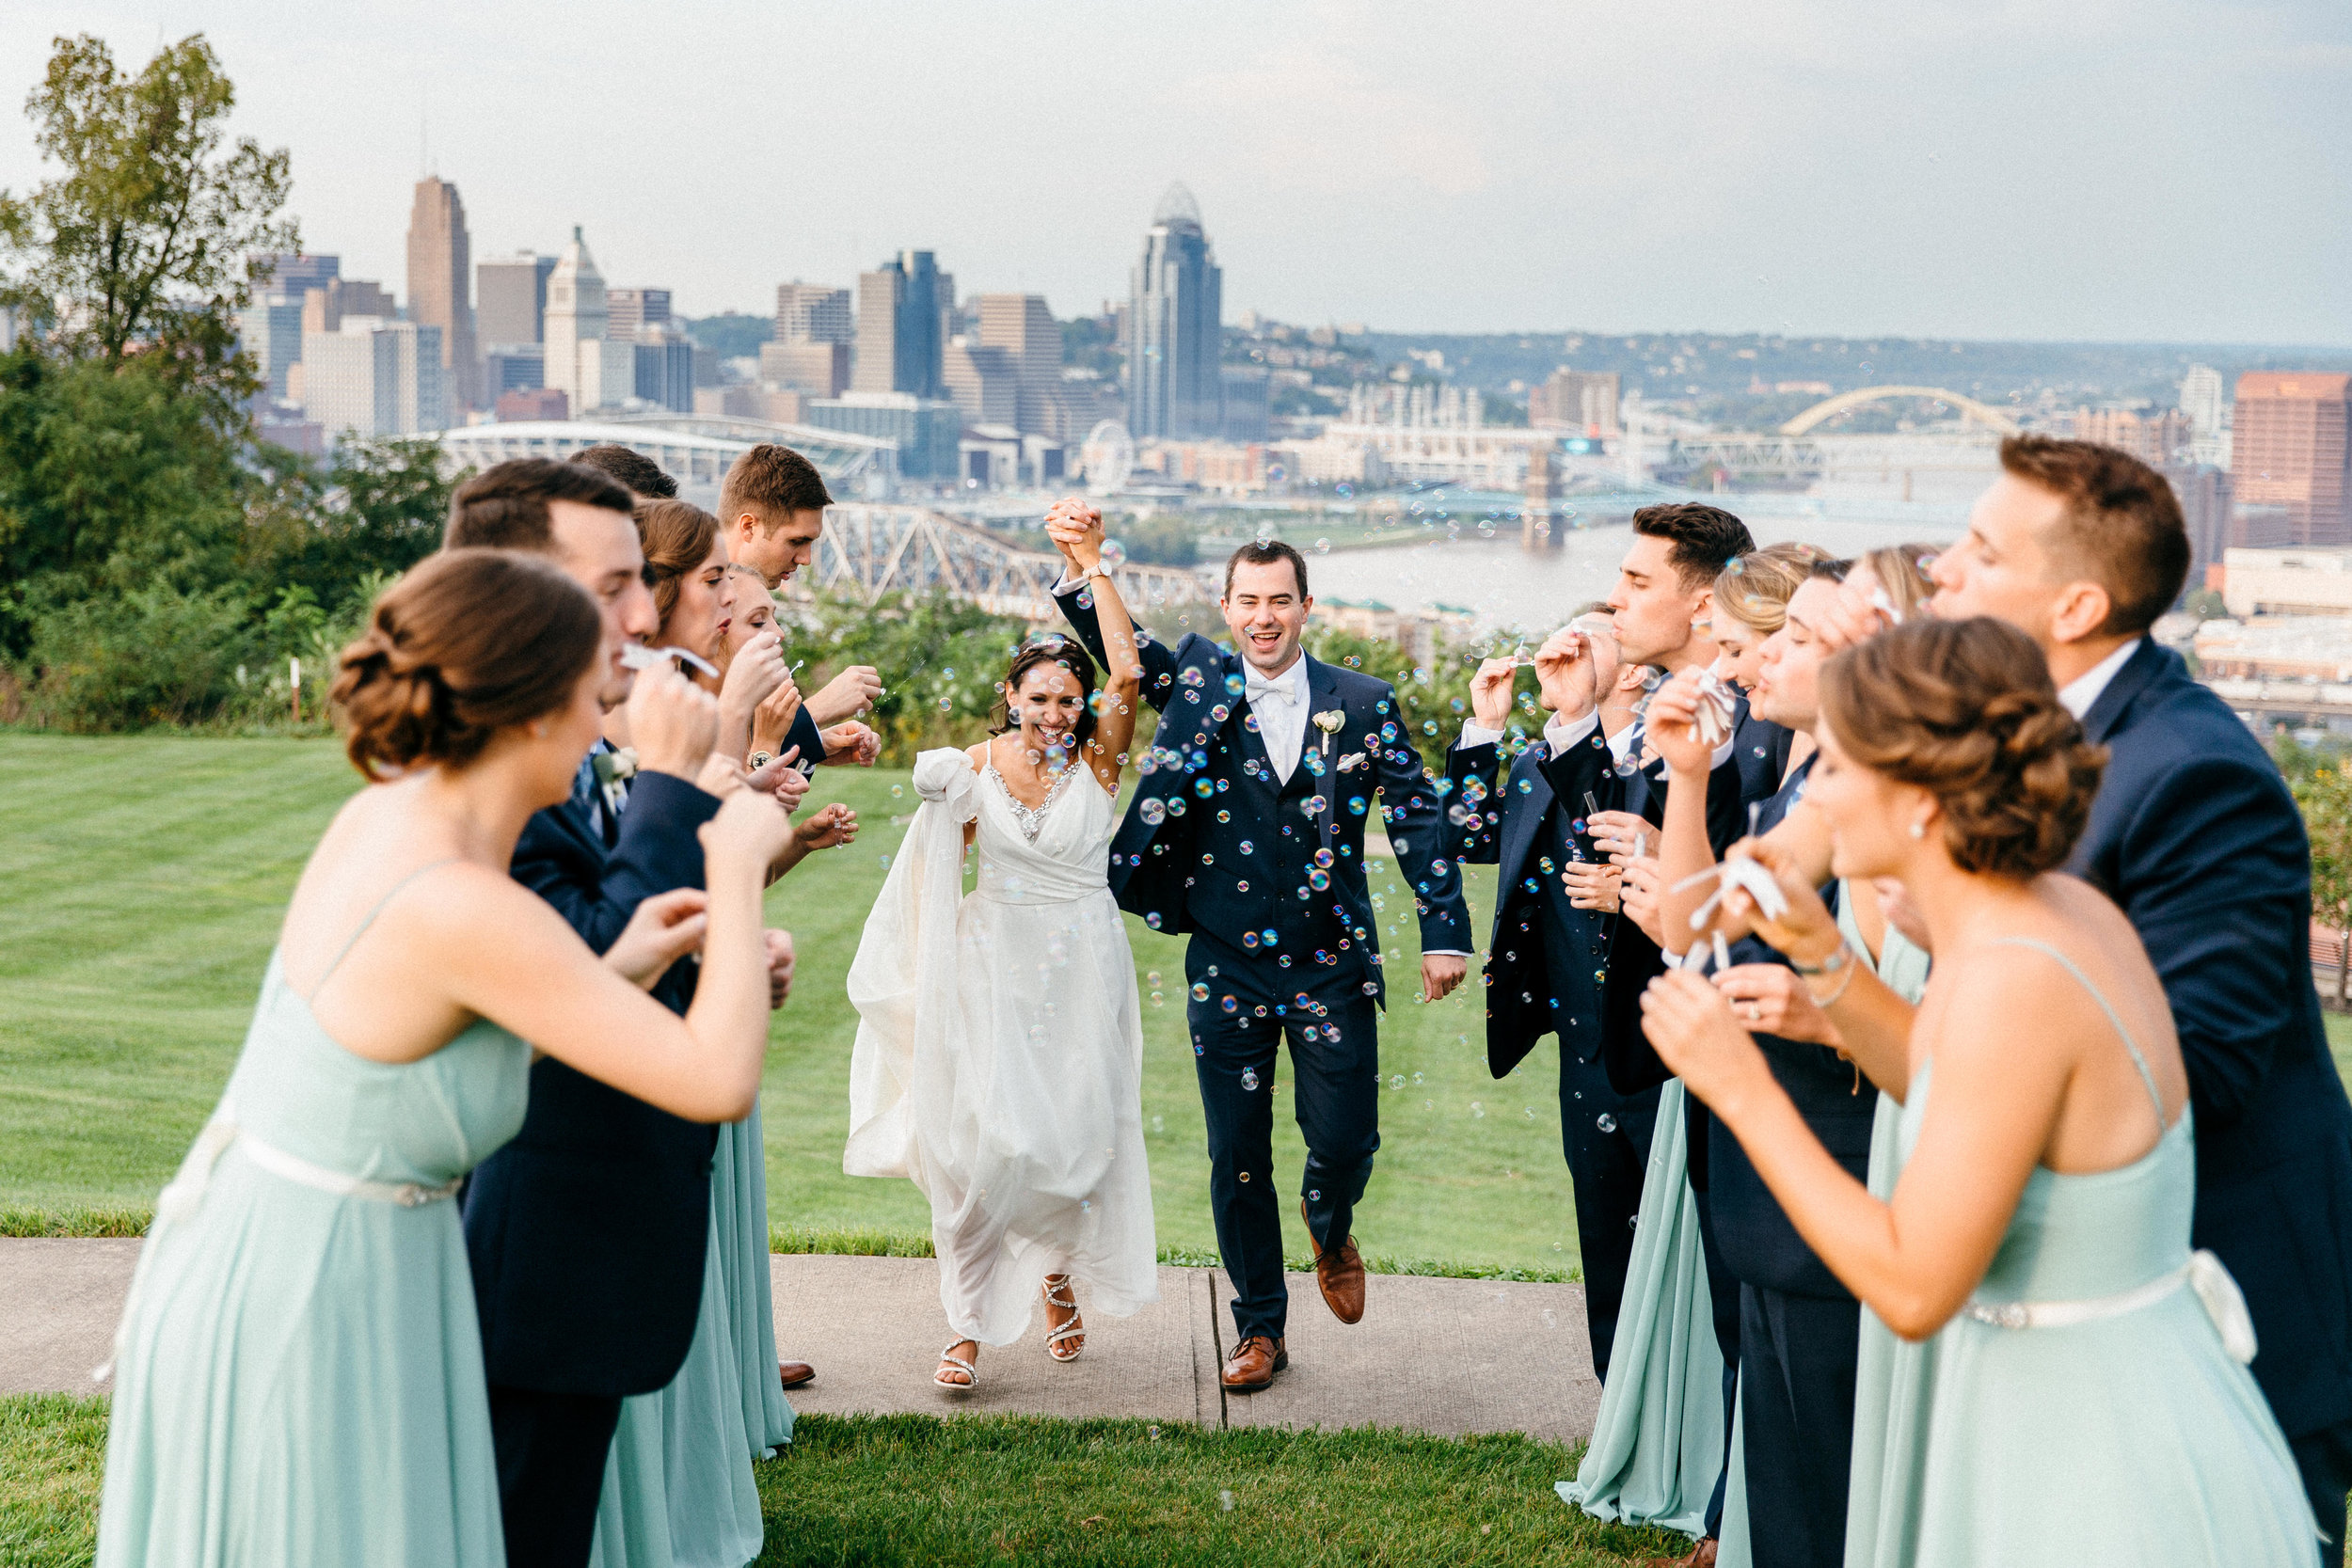 Cincinnati Wedding at Drees Pavilion